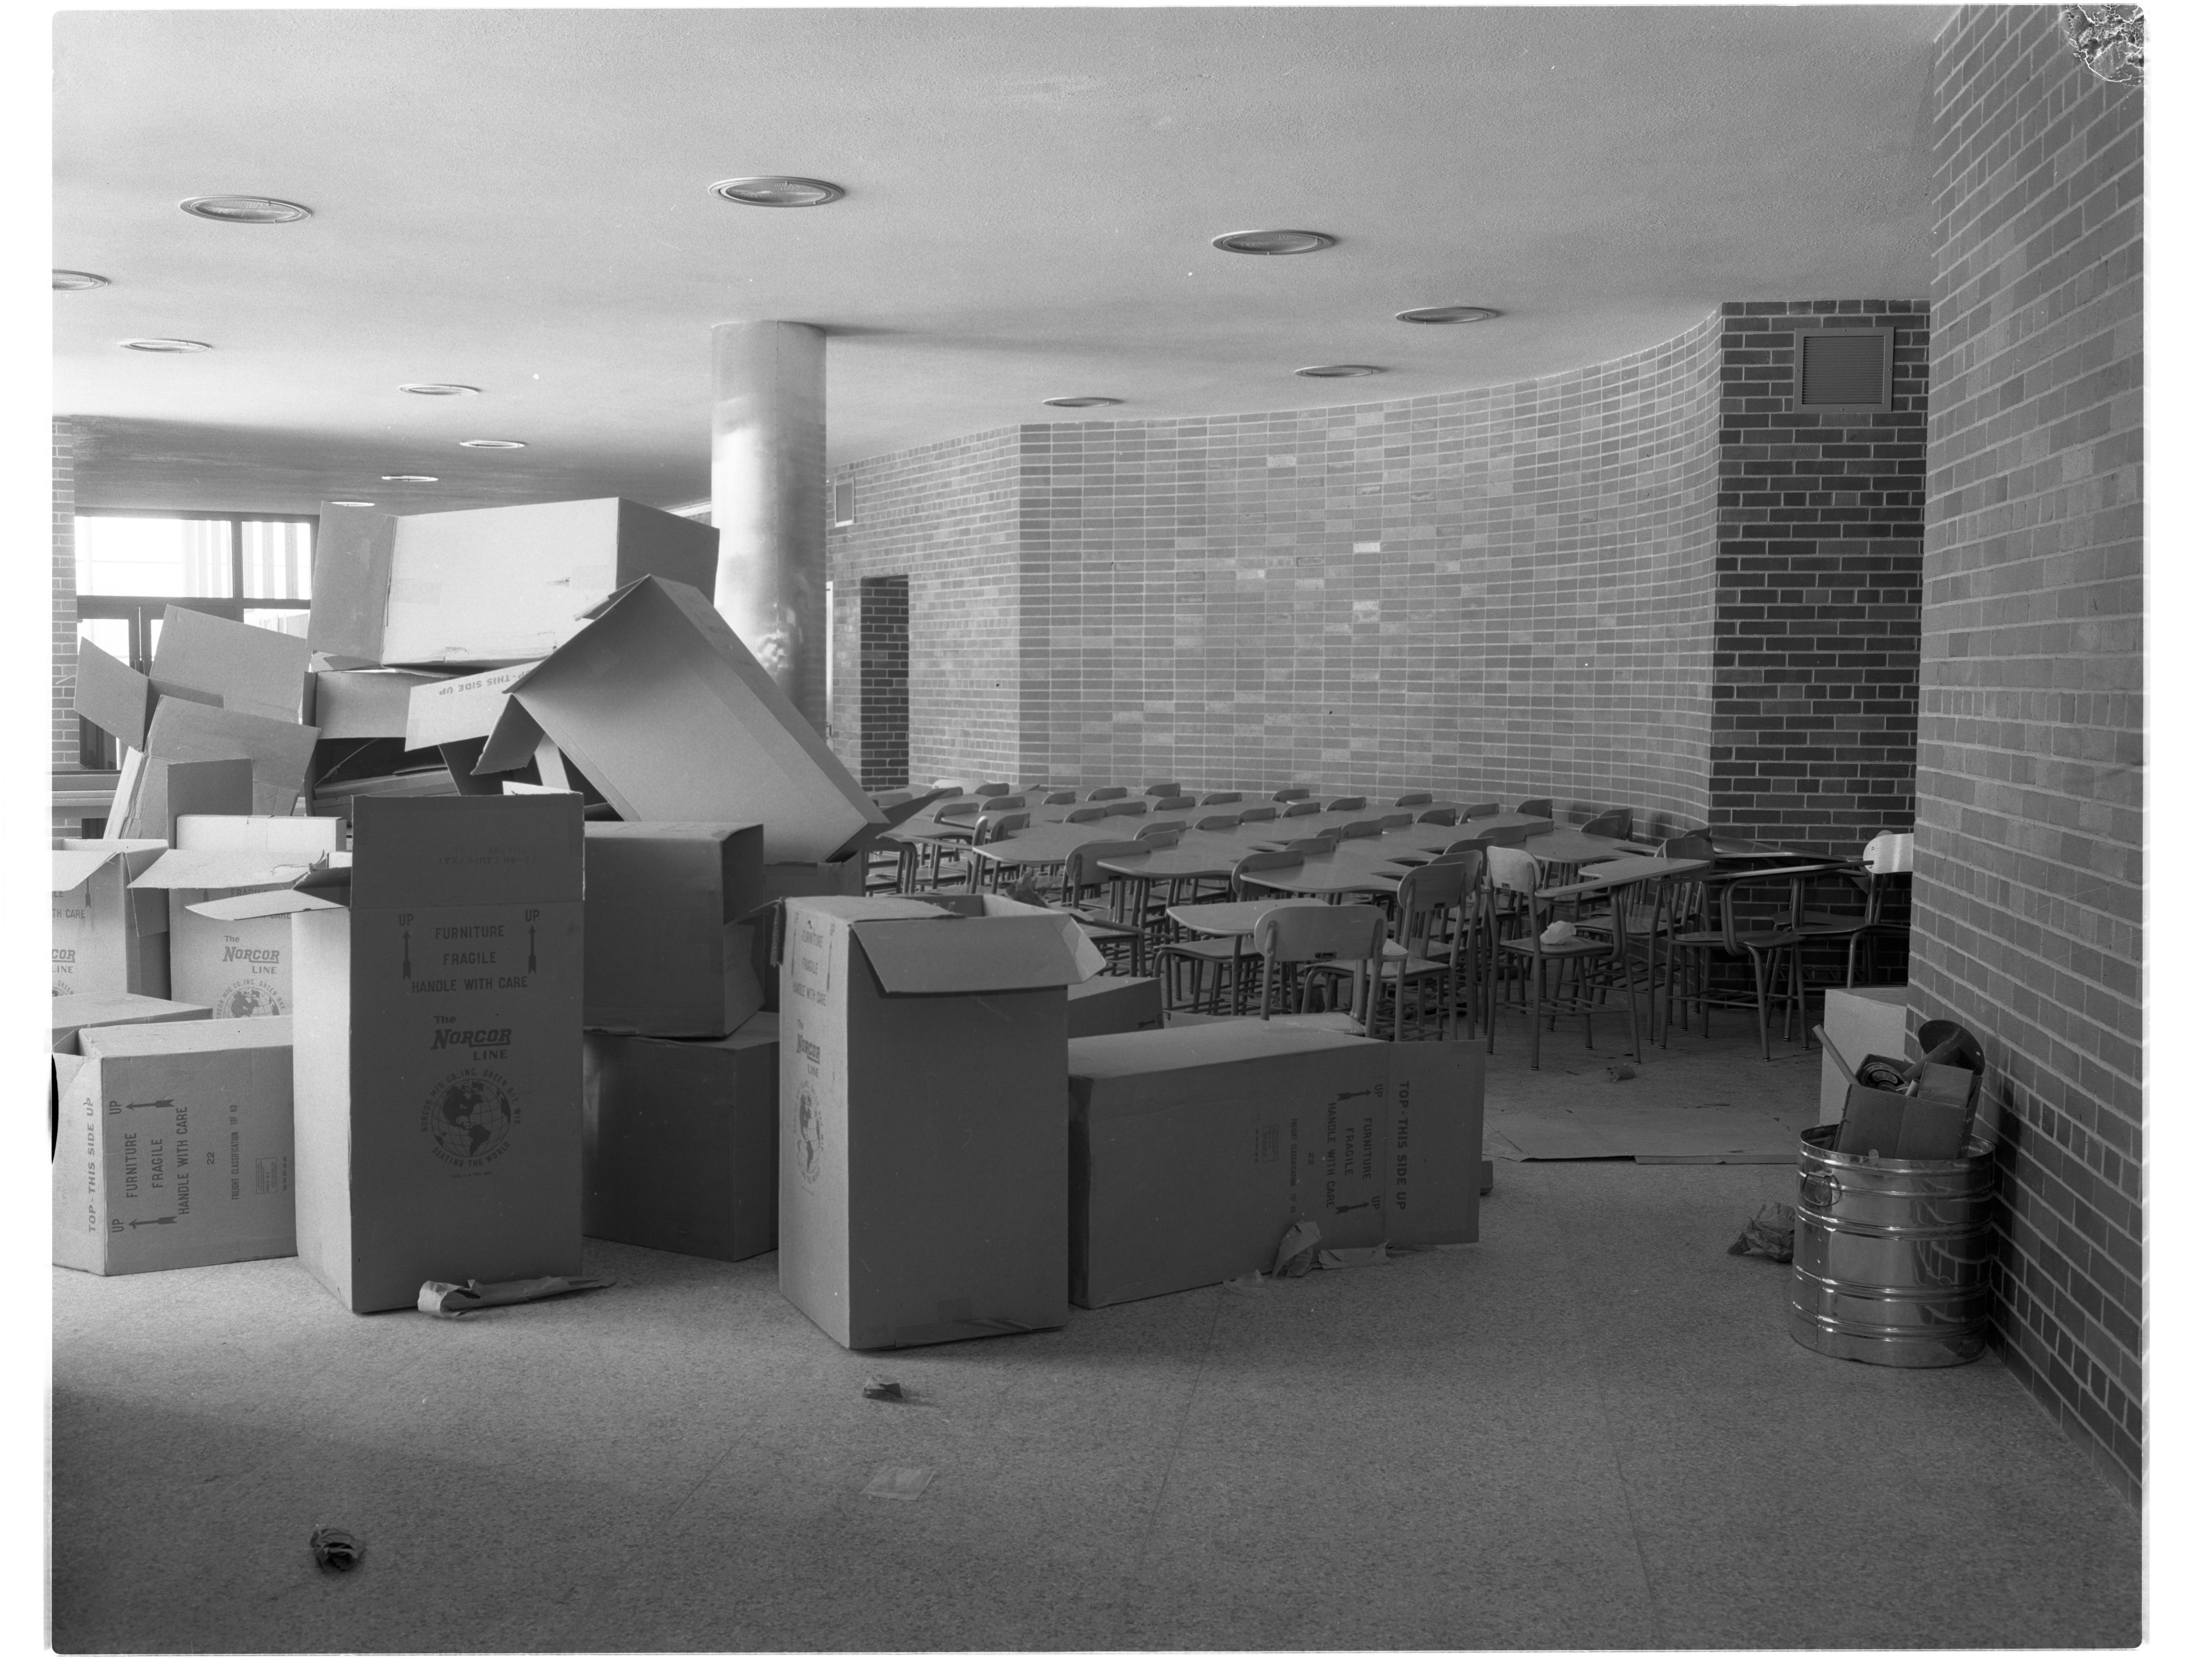 Brand New Furniture Arrives At New Ann Arbor High School, February 1956